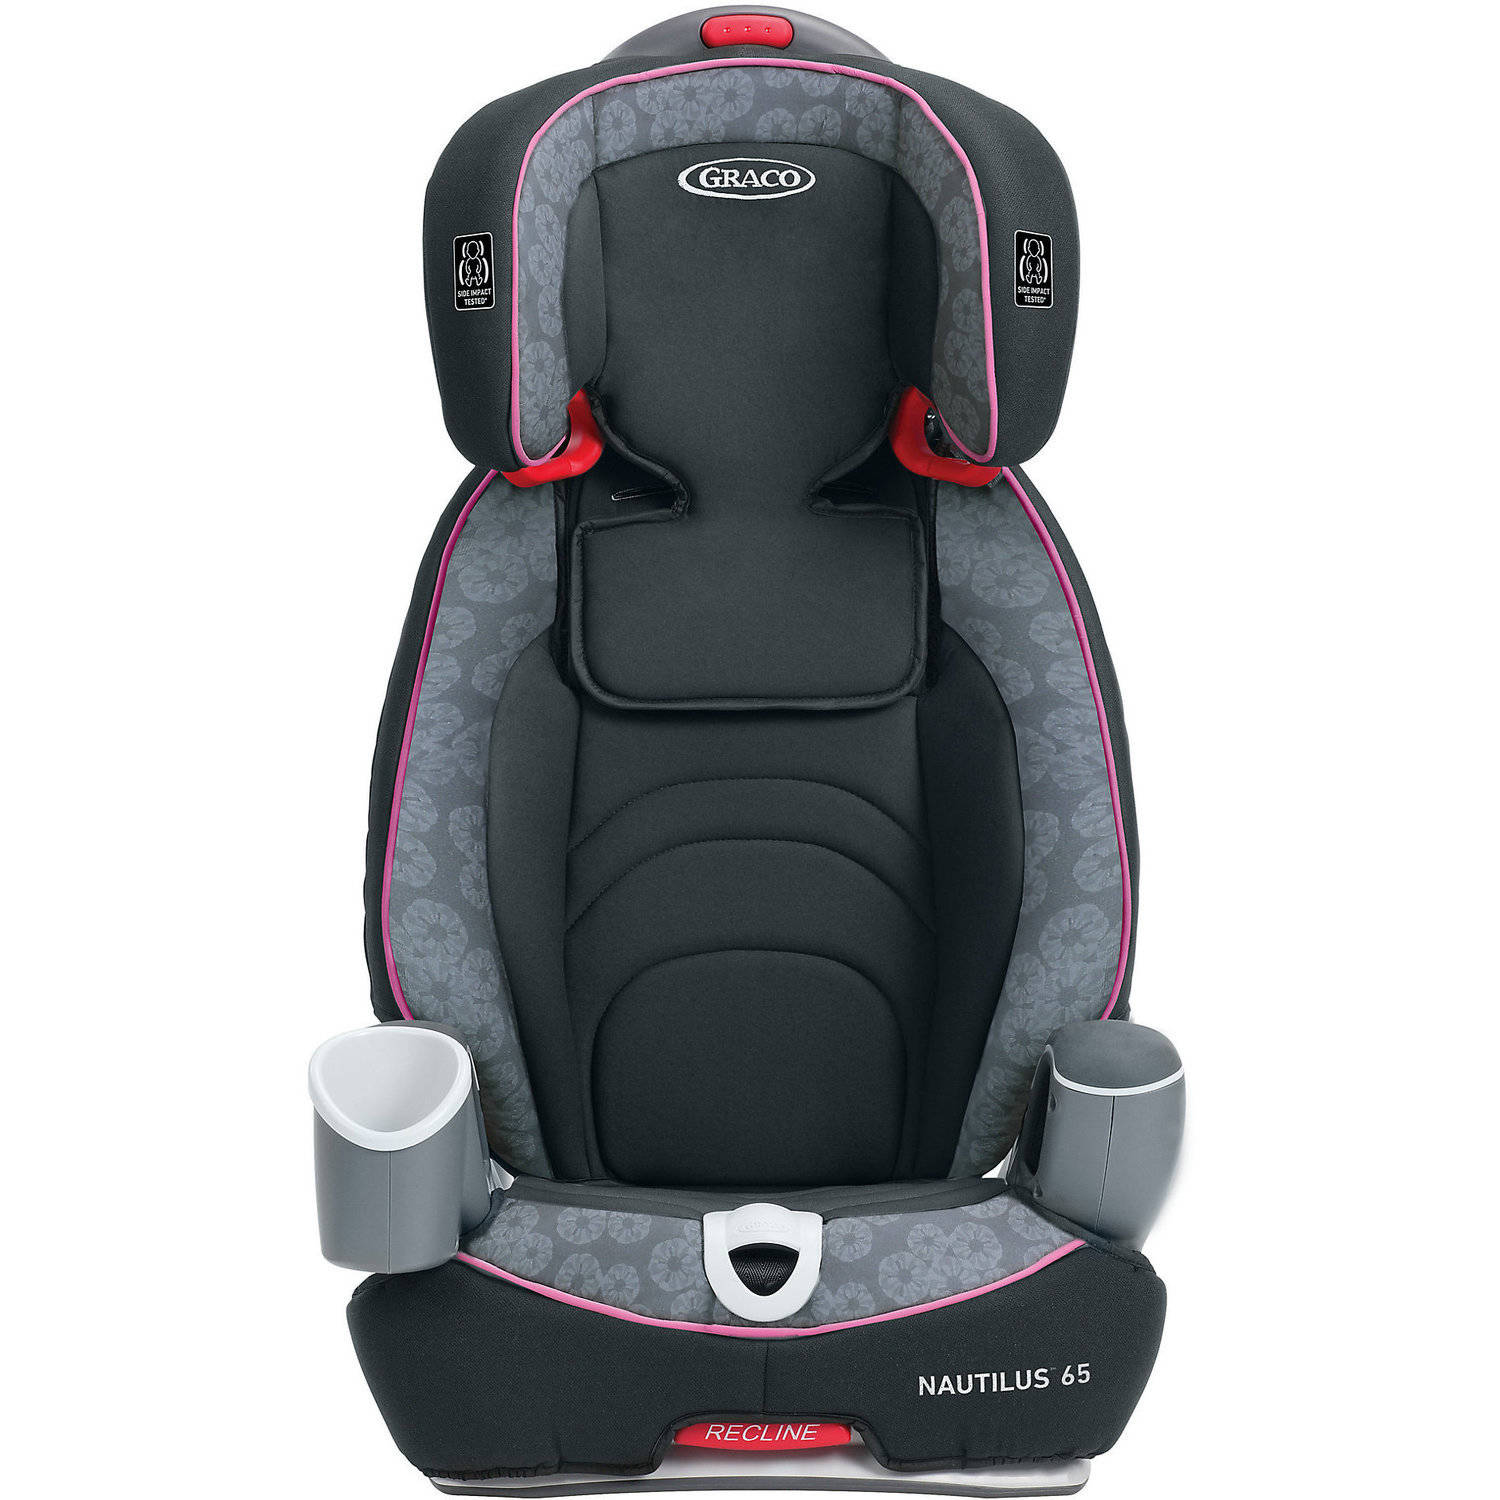 Graco nautilus 3 in 1 multi use car seat - Graco Nautilus 65 3 In 1 Multi Use Harness Booster Car Seat Choose Your Pattern Walmart Com